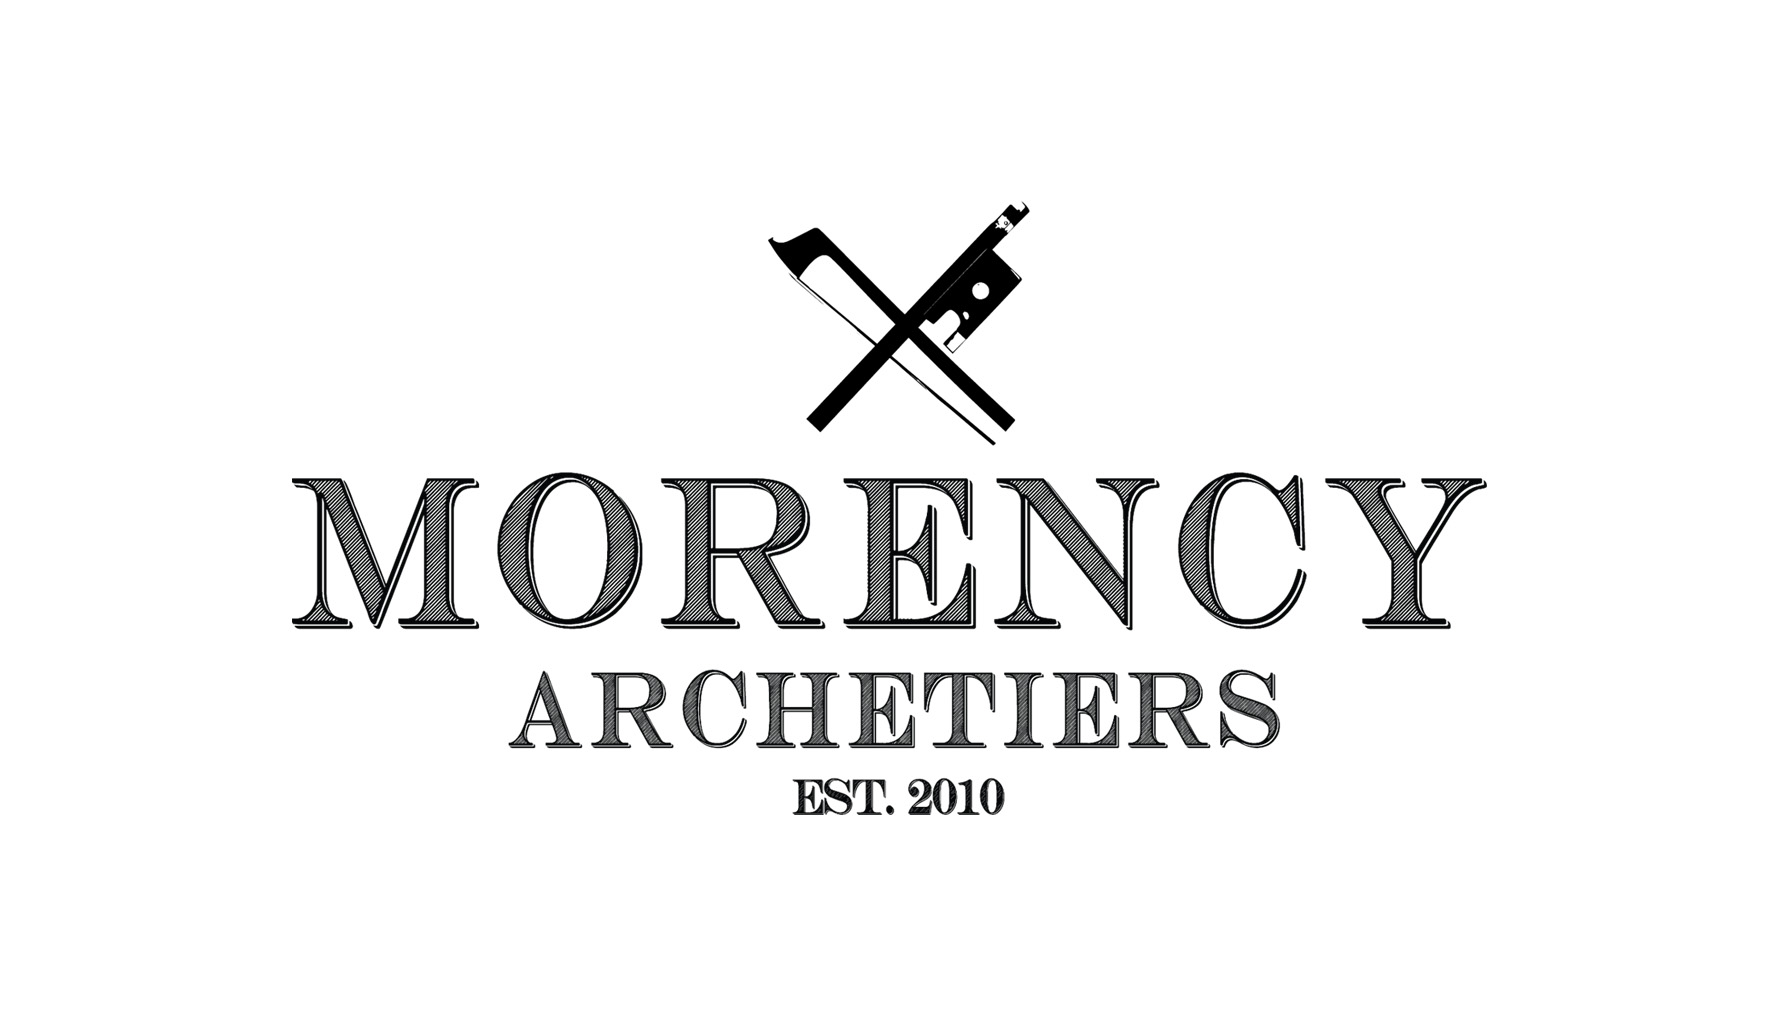 Archèterie R. Morency Inc